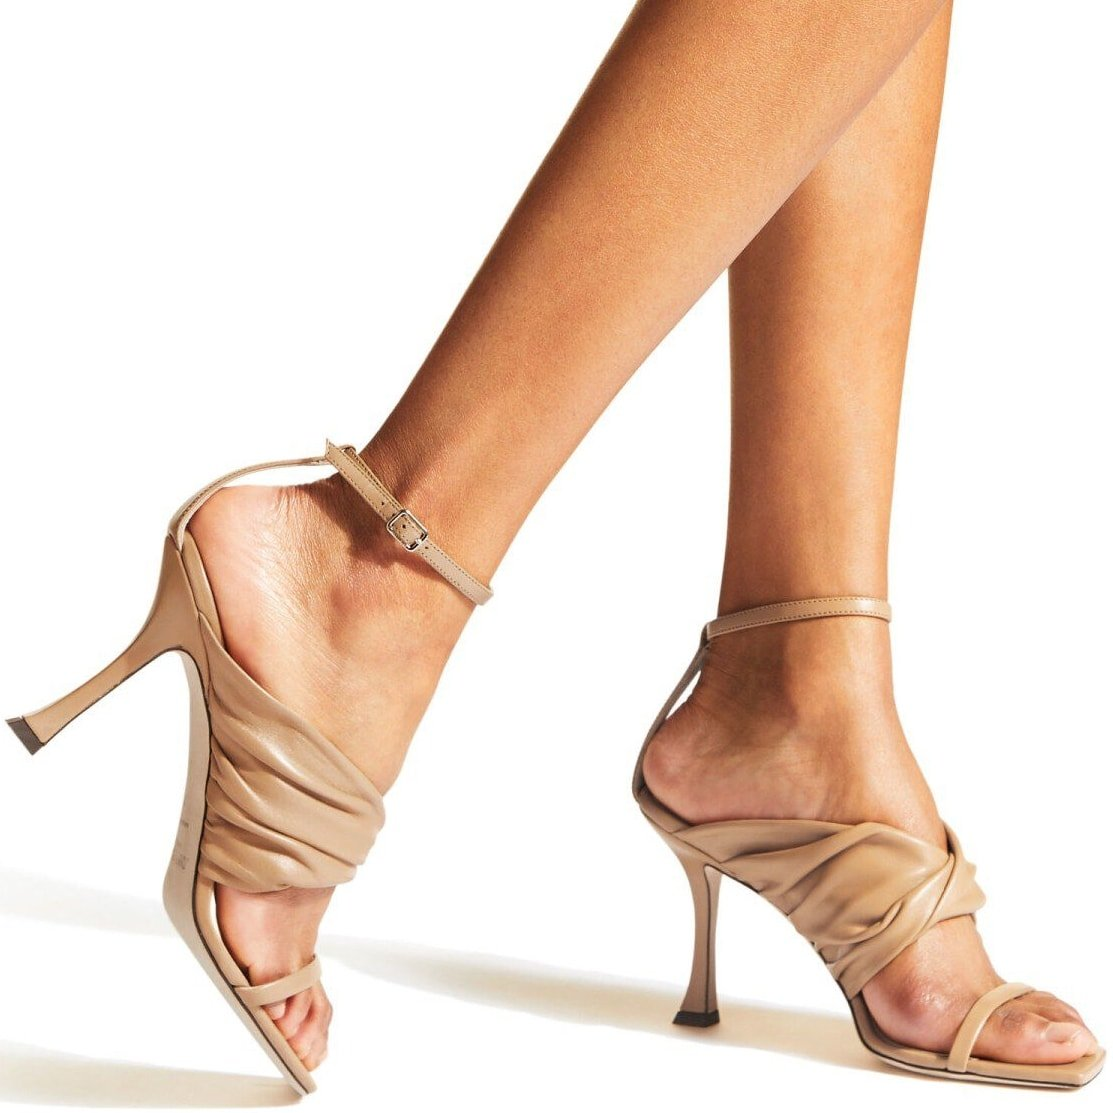 Jimmy Choo's caramel leather Ocean sandals are finished with a squared-toe and sit on a 90mm curved heel